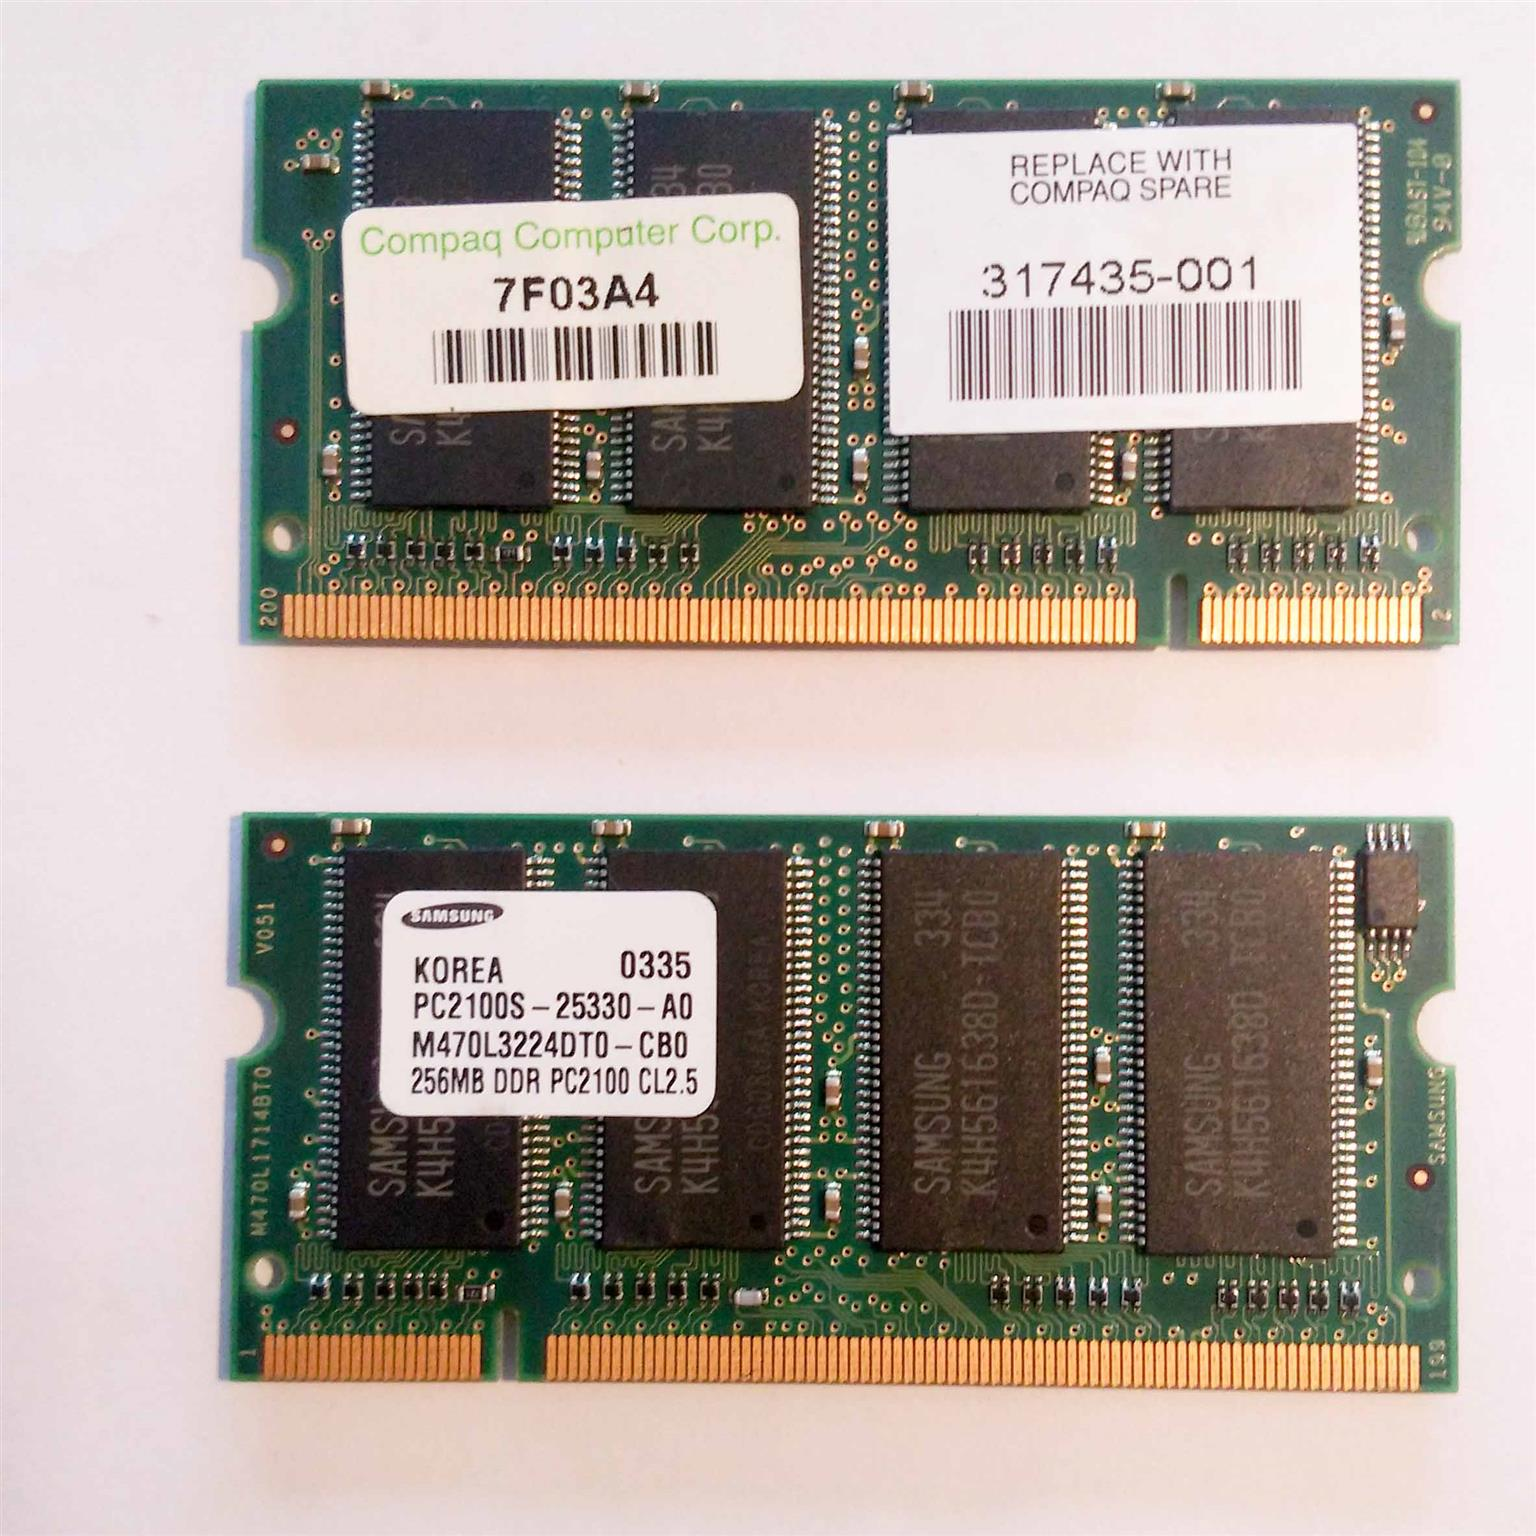 256MB DDR PC2100 CL2.5